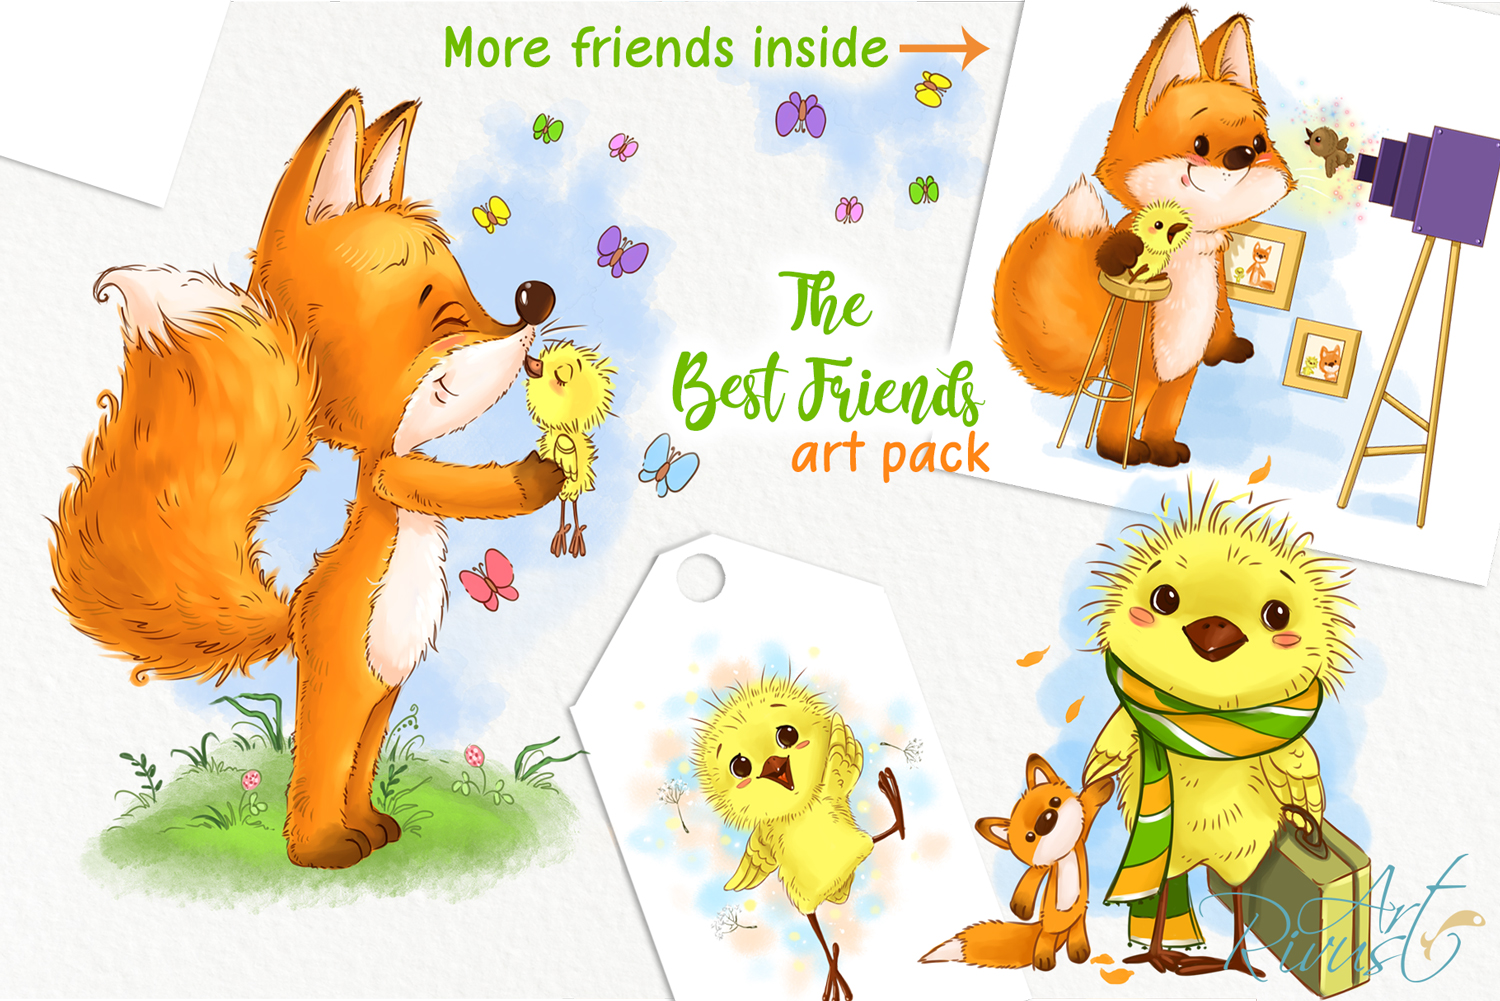 Fox and chick PNG clipart. The best friend graphic art. example image 1